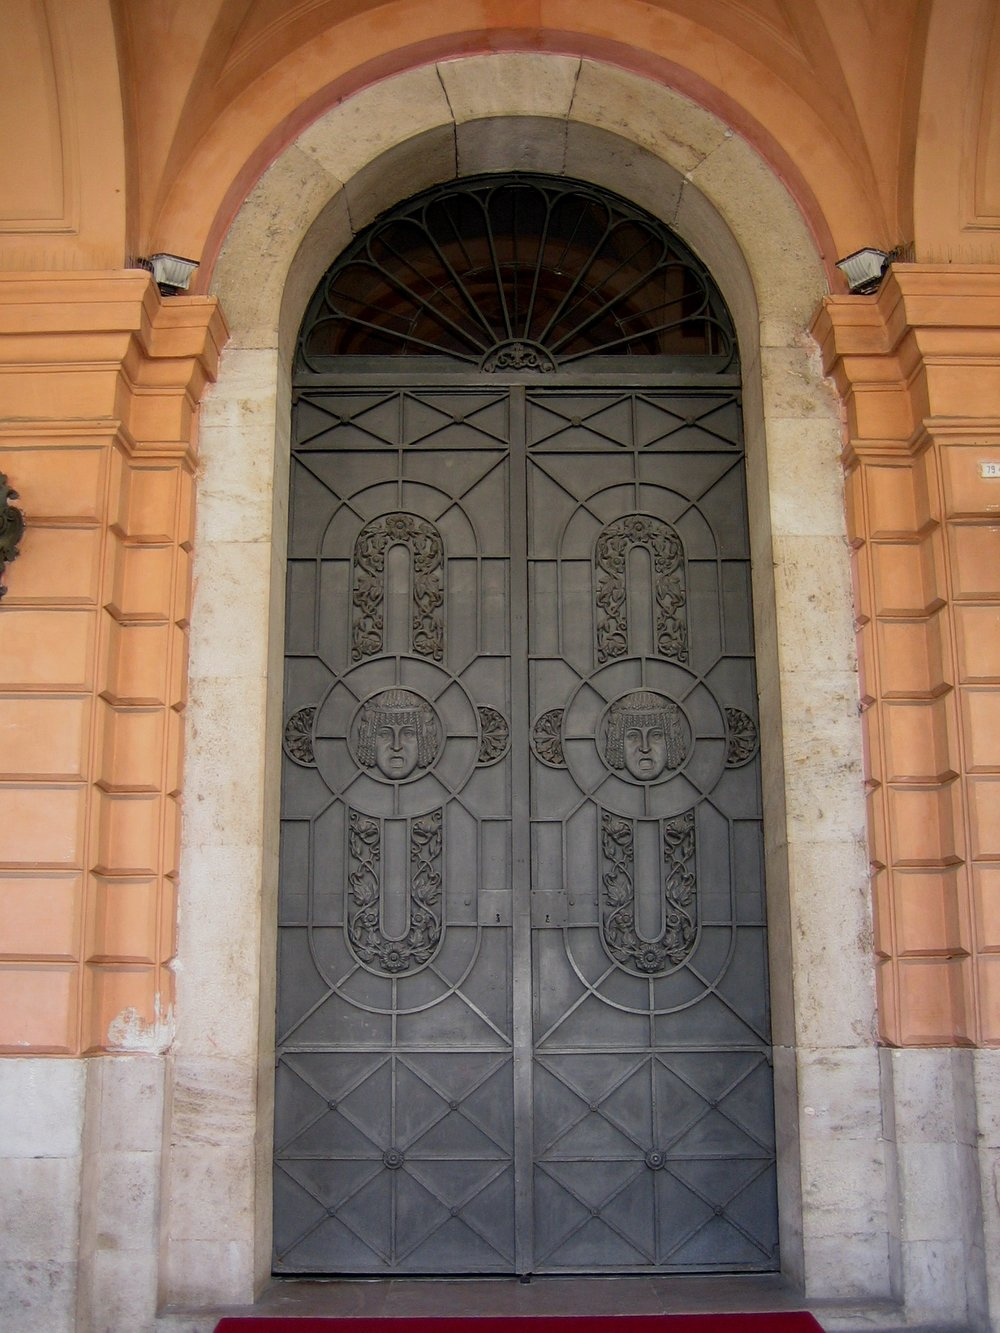 Entrance Doors to the Verdi Opera House, Salerno, Italy